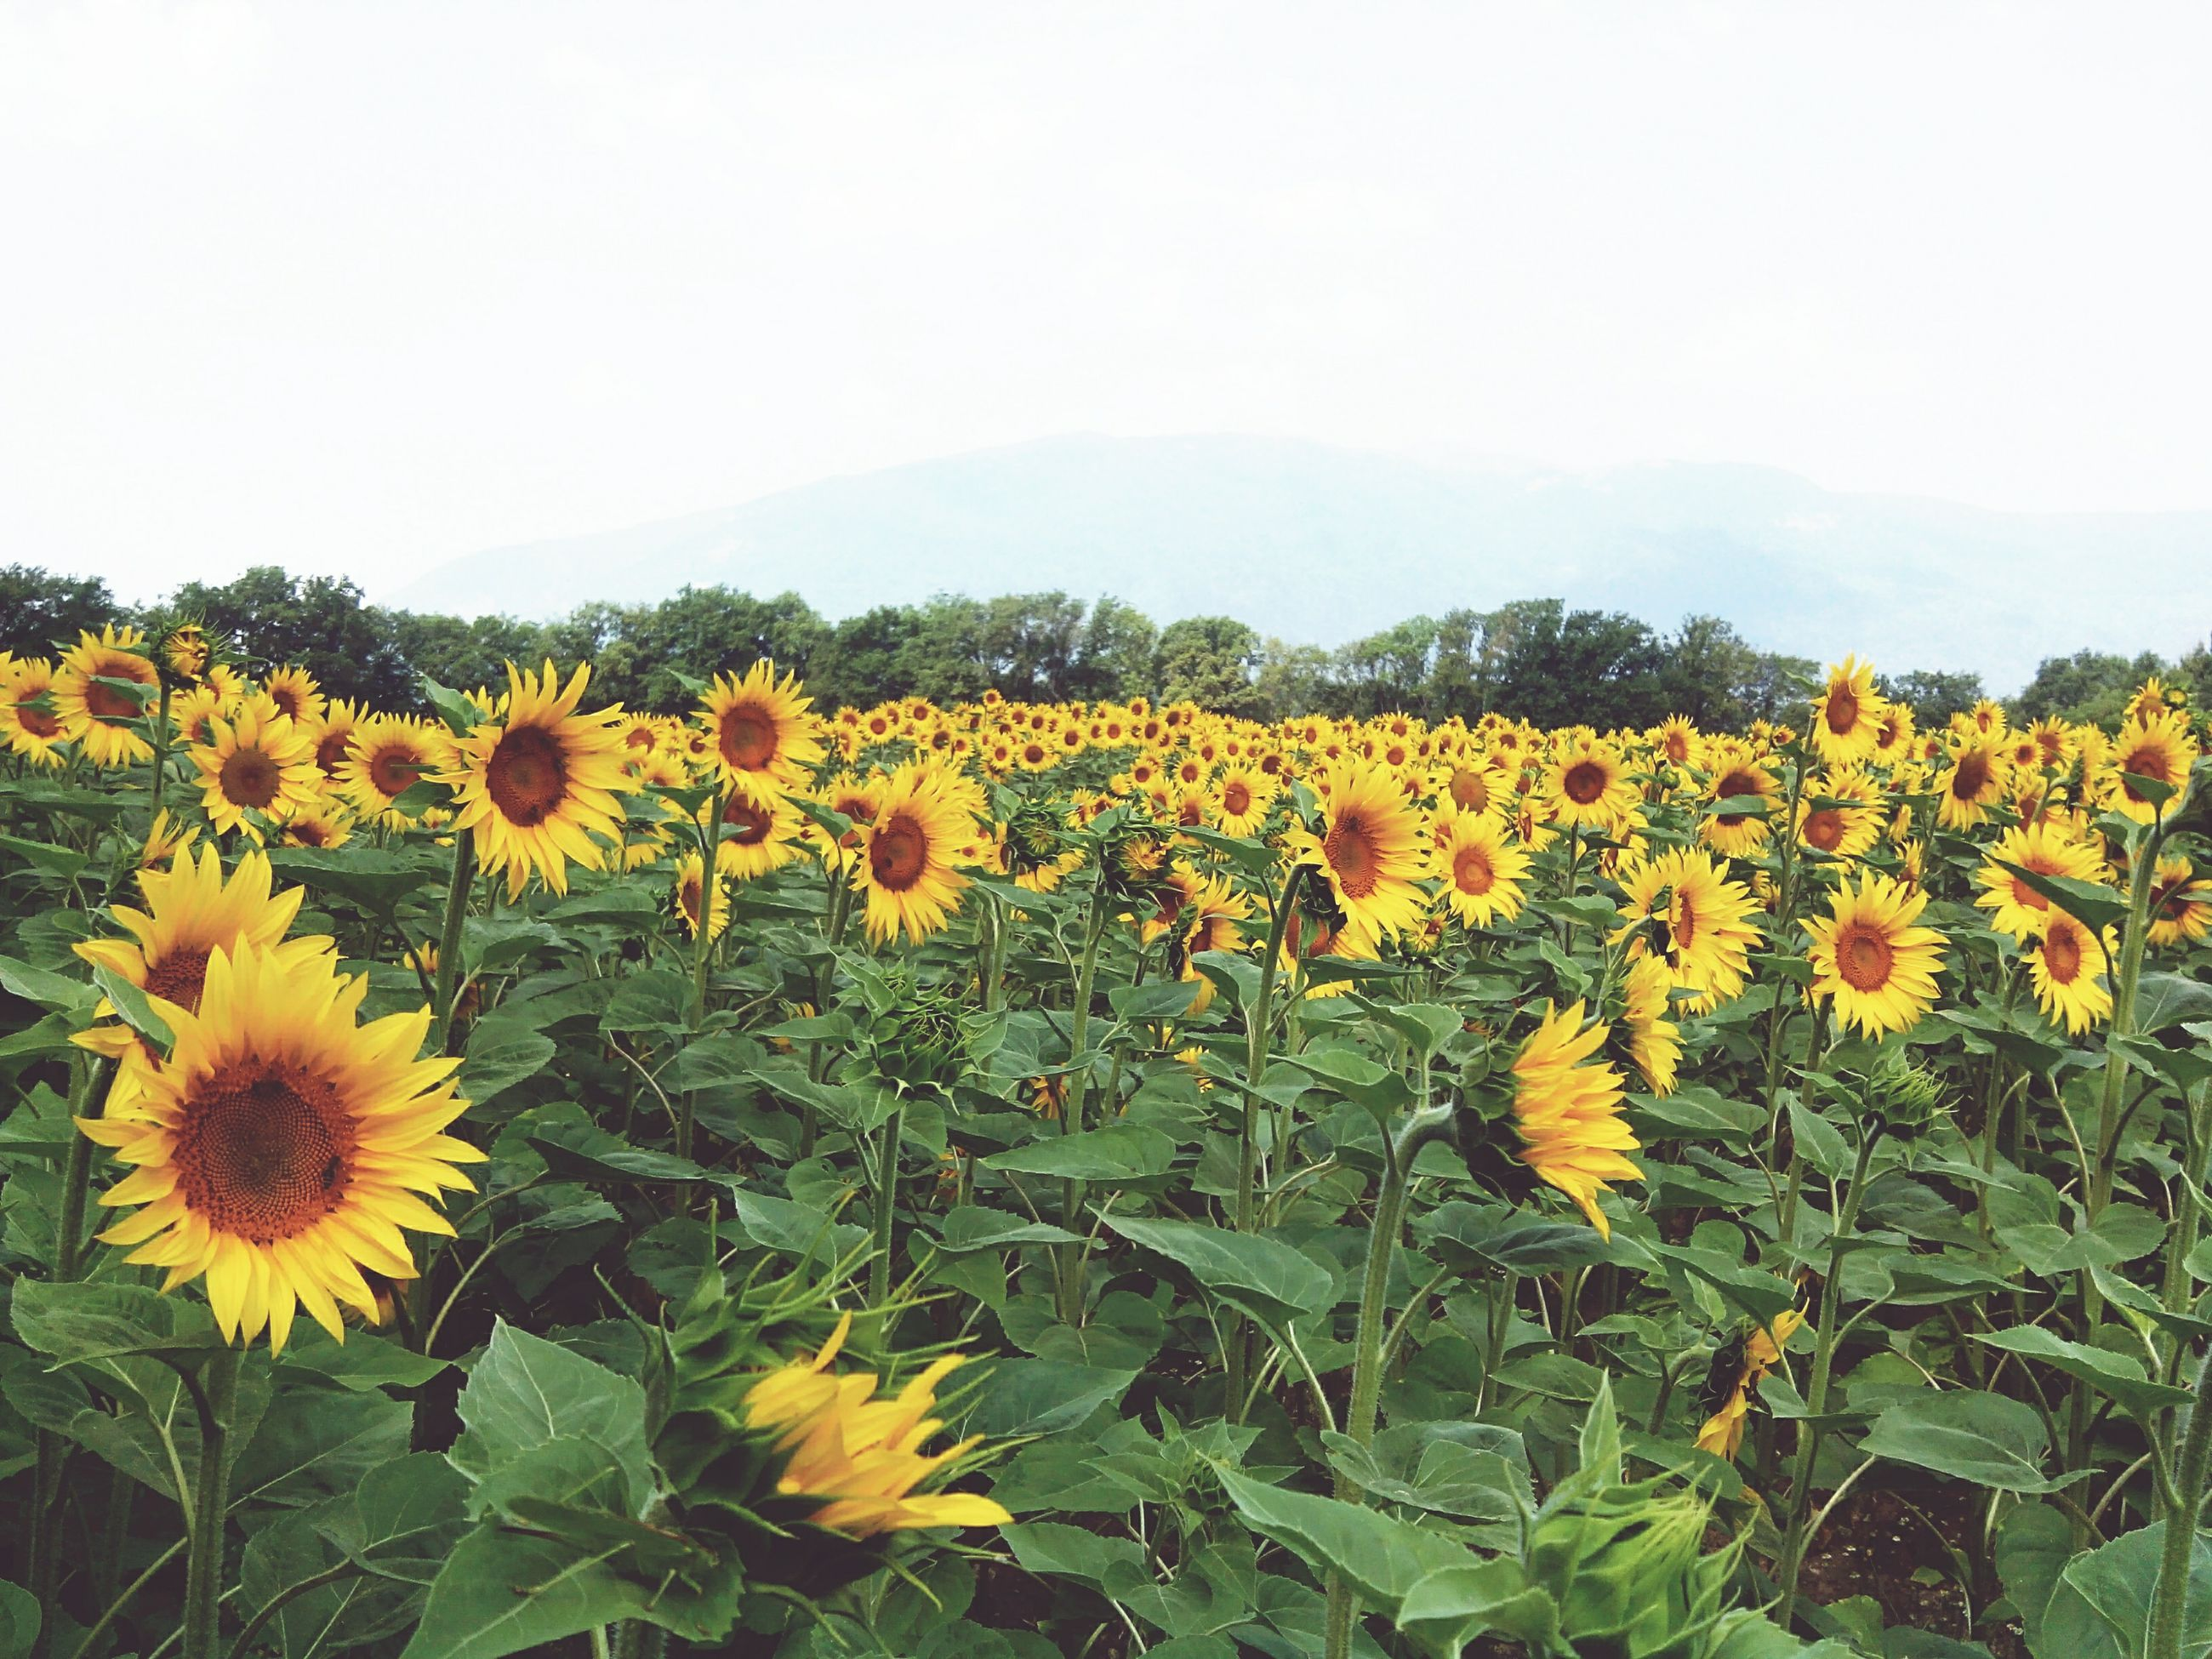 flower, yellow, freshness, growth, beauty in nature, fragility, field, nature, petal, plant, sunflower, blooming, flower head, rural scene, agriculture, abundance, landscape, tranquil scene, in bloom, blossom